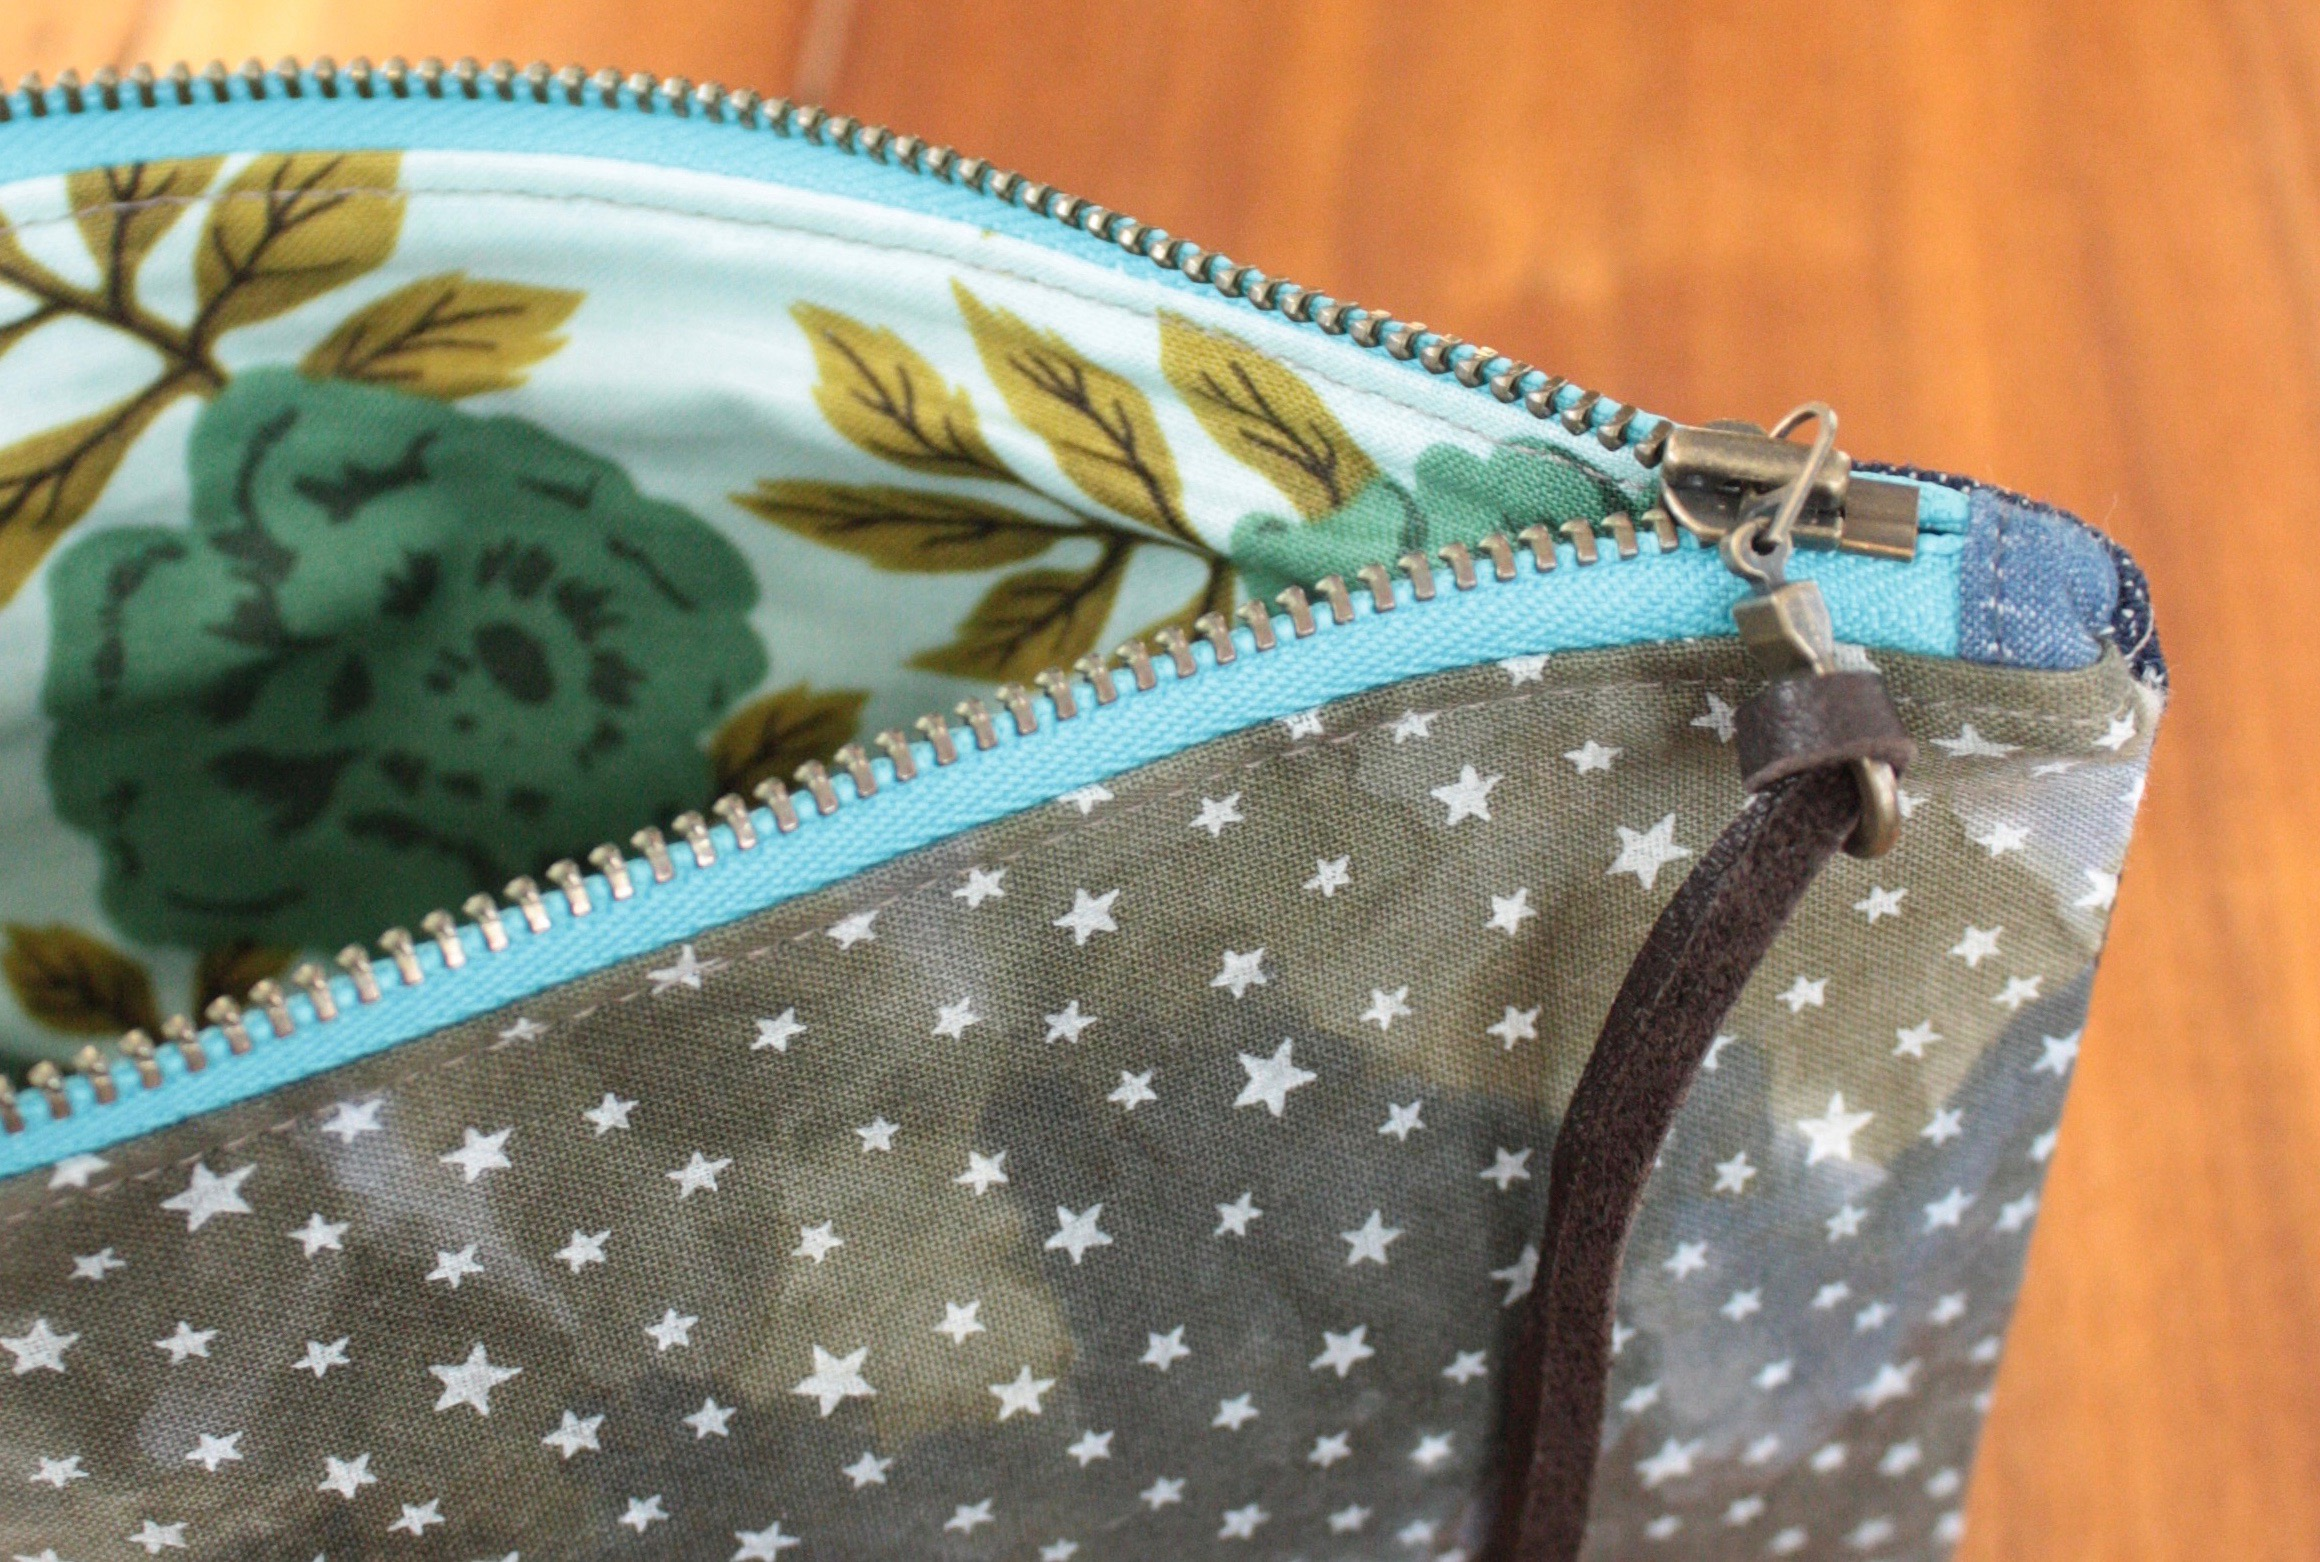 zipper pouch - night sky interior 2.jpg